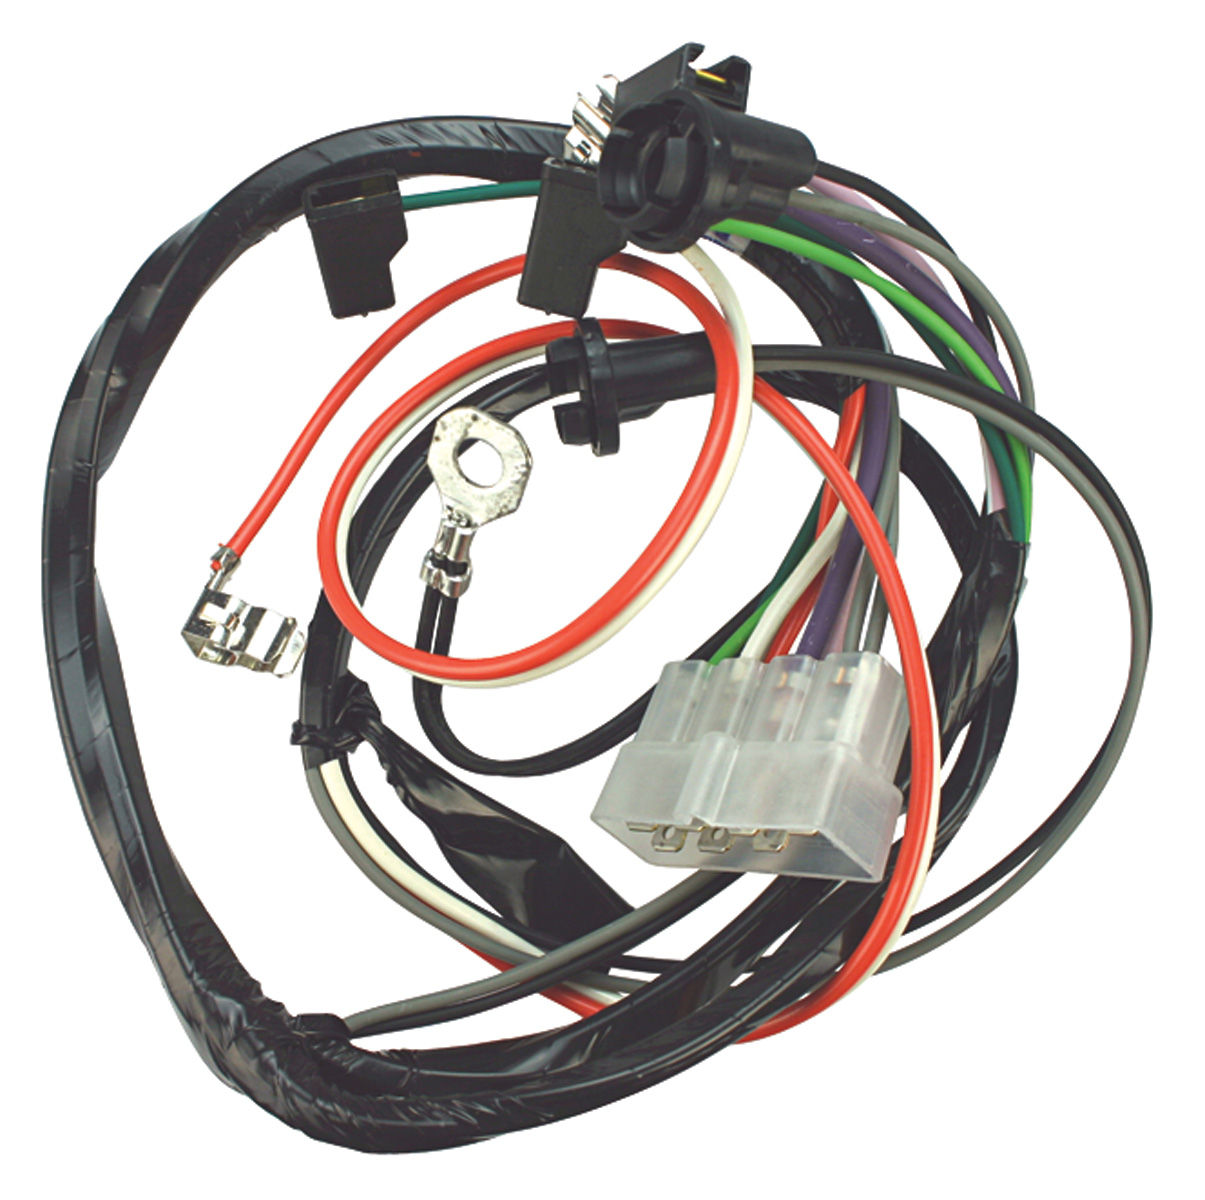 hight resolution of 1972 chevelle complete wiring harness 37 wiring diagram wiring diagrams for 1967 chevelle ss 1971 chevelle